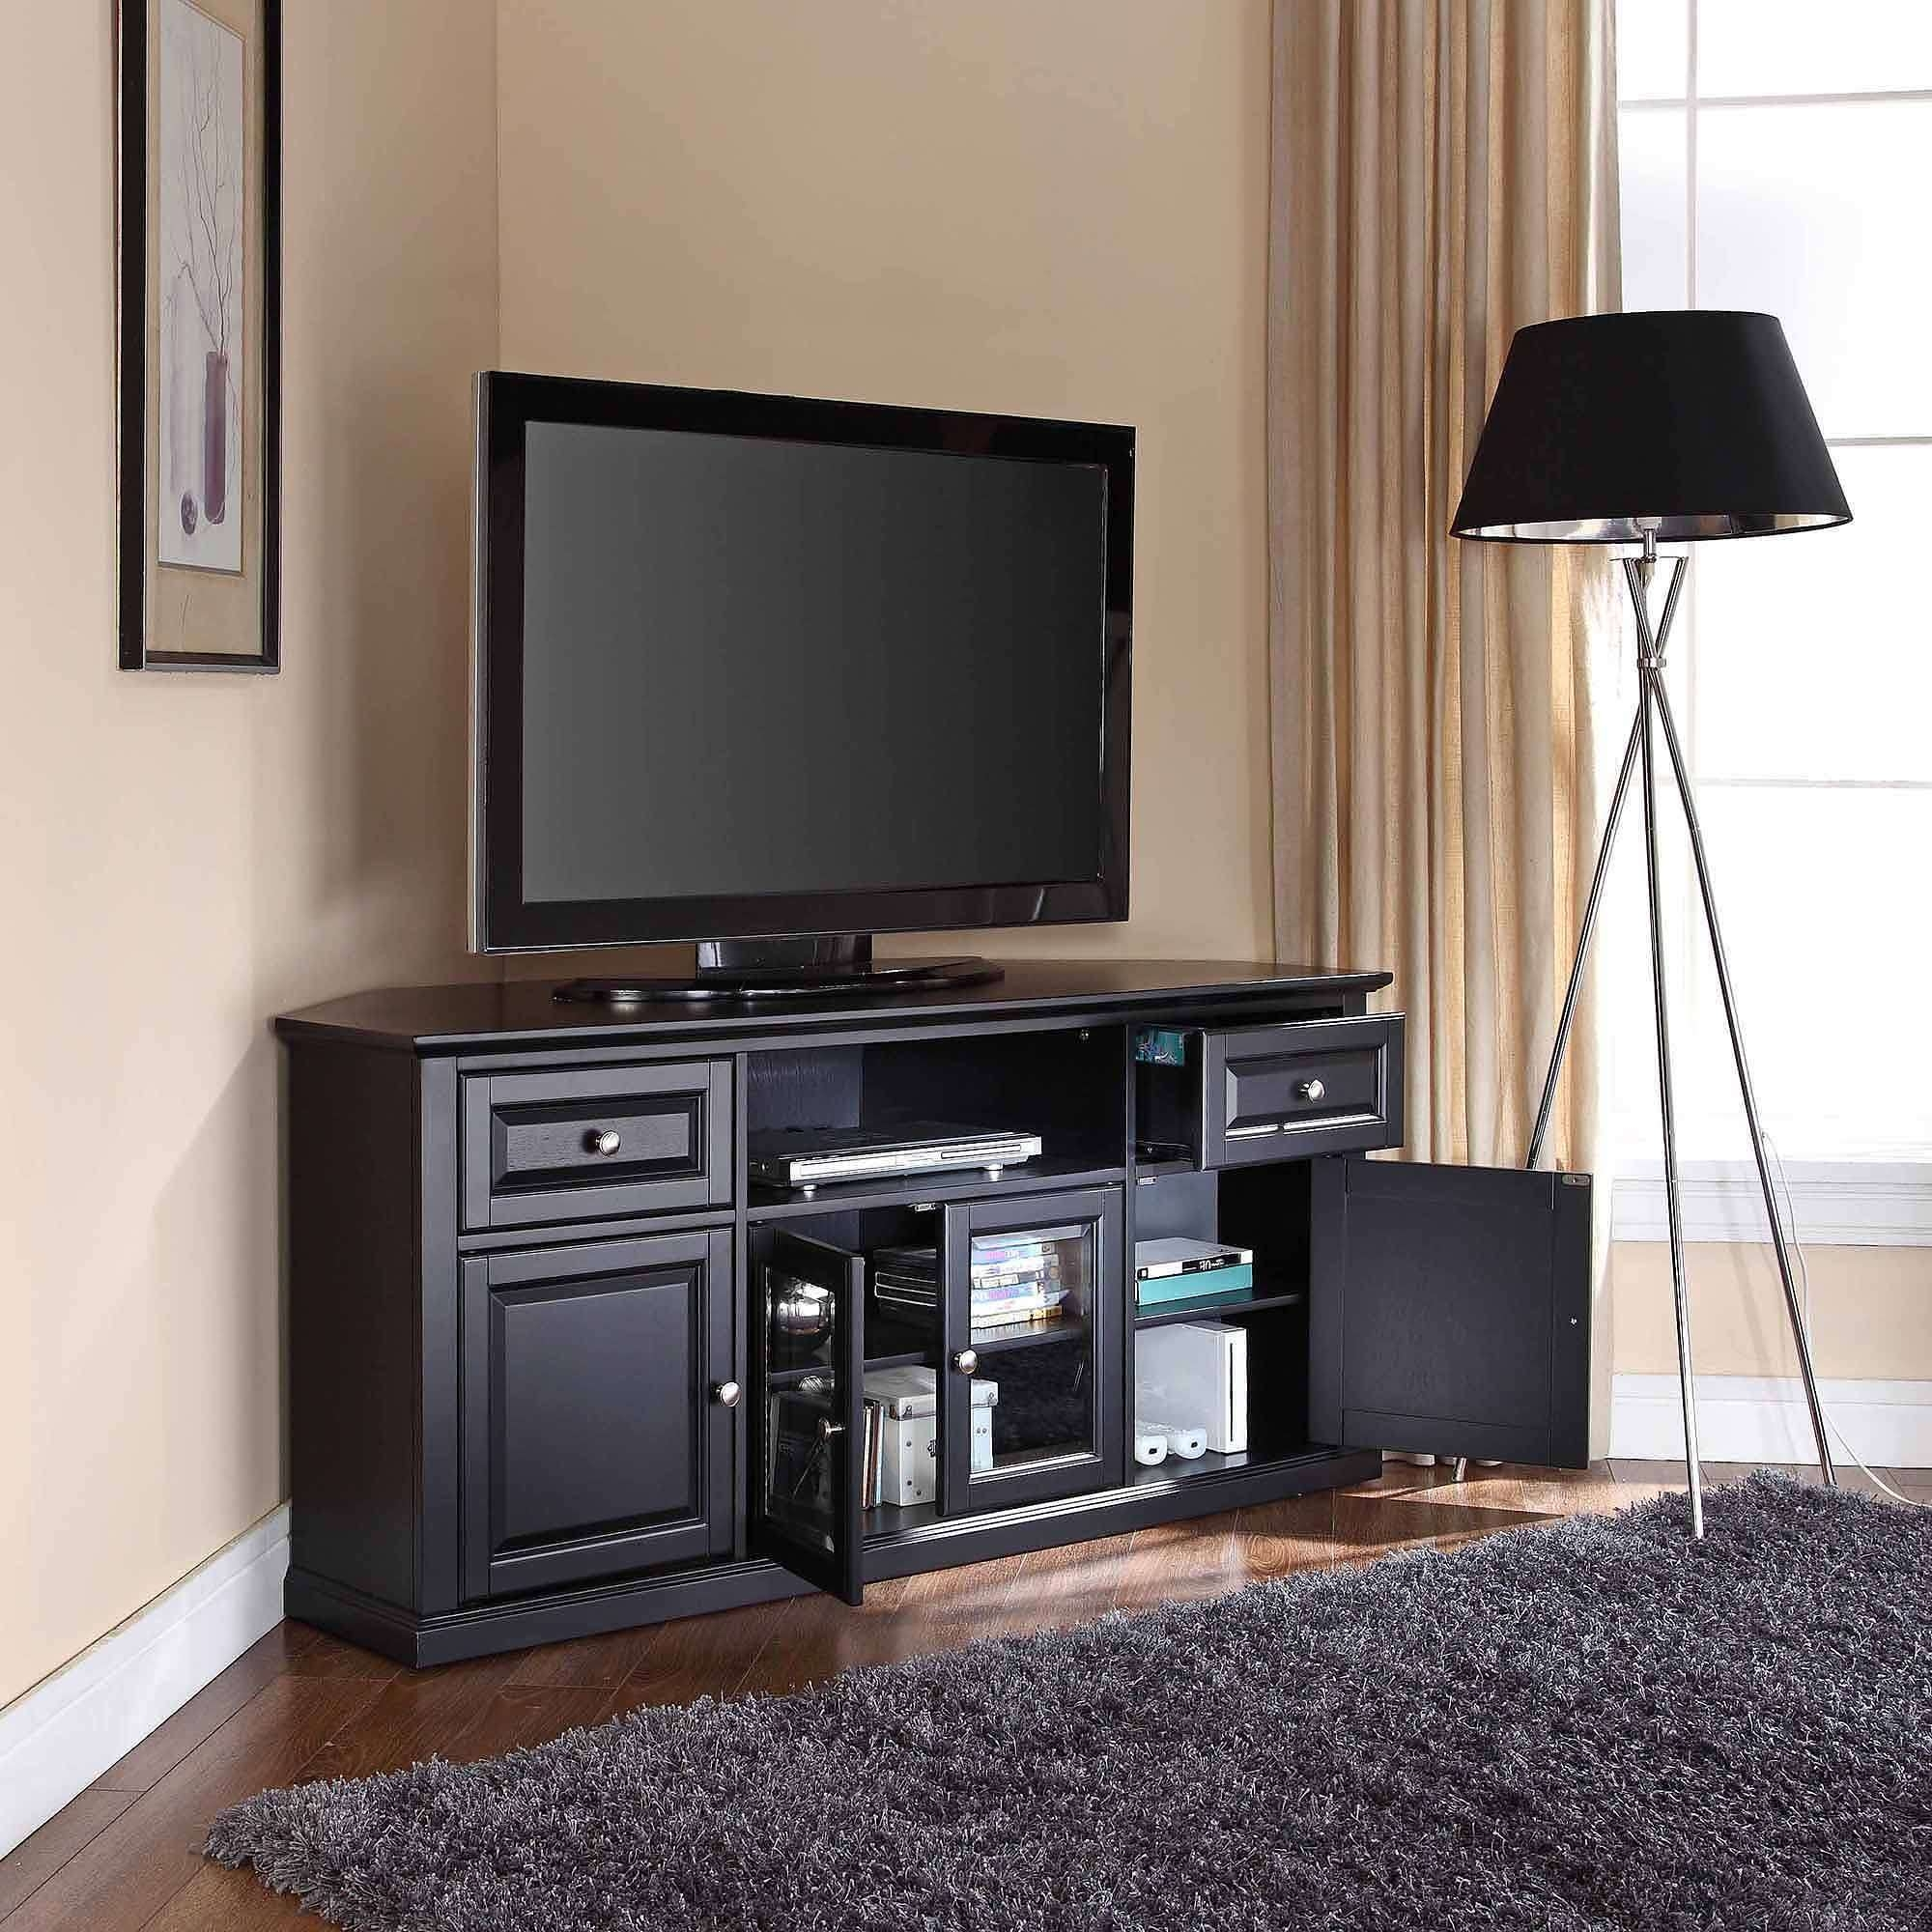 "Crosley Furniture Corner Tv Stand For Tvs Up To 60"" – Walmart Inside Retro Corner Tv Stands (View 4 of 15)"